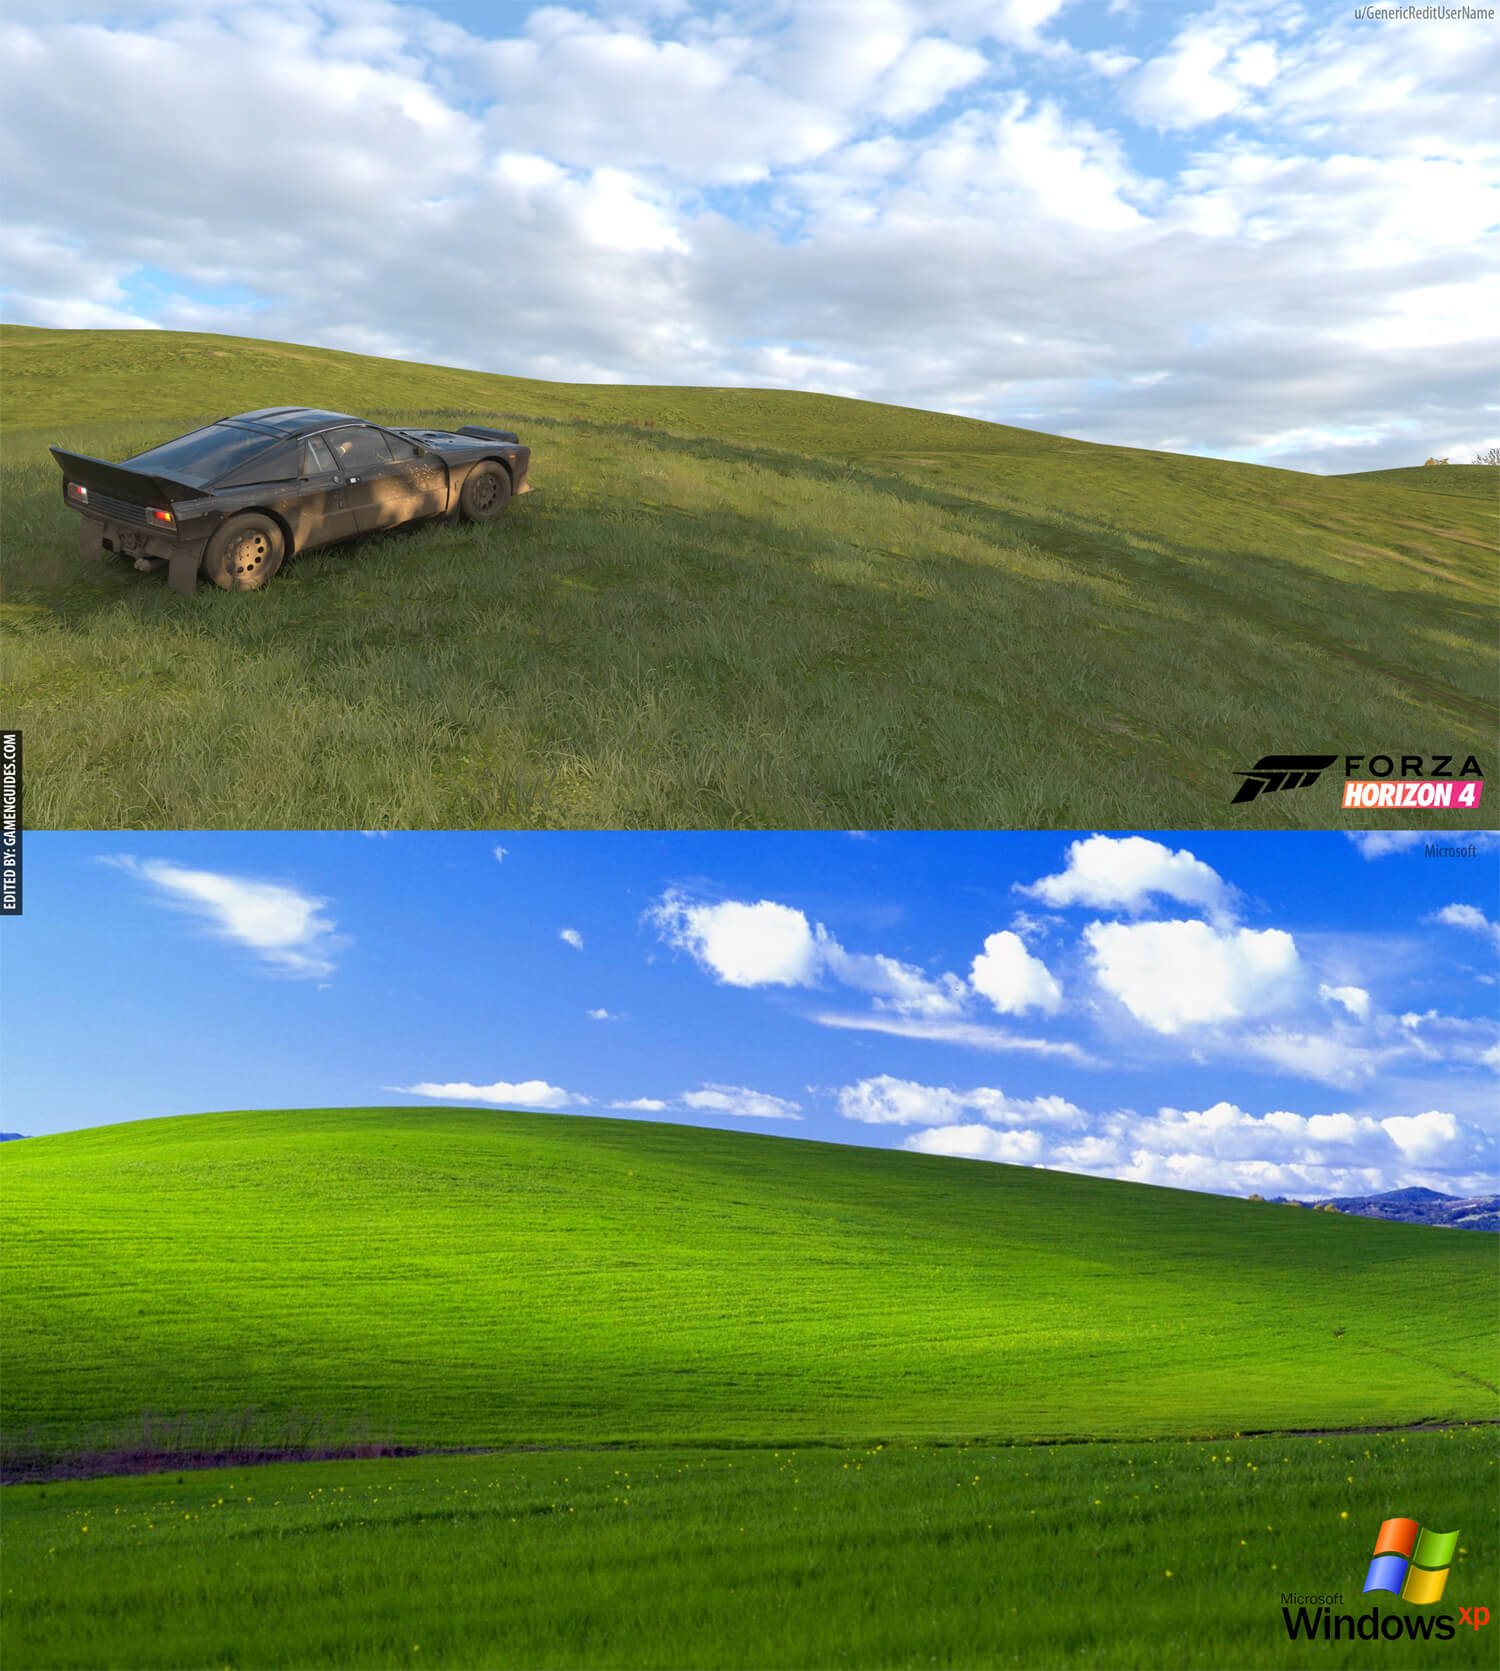 Windows Xp Bliss Location Posted By Ethan Johnson